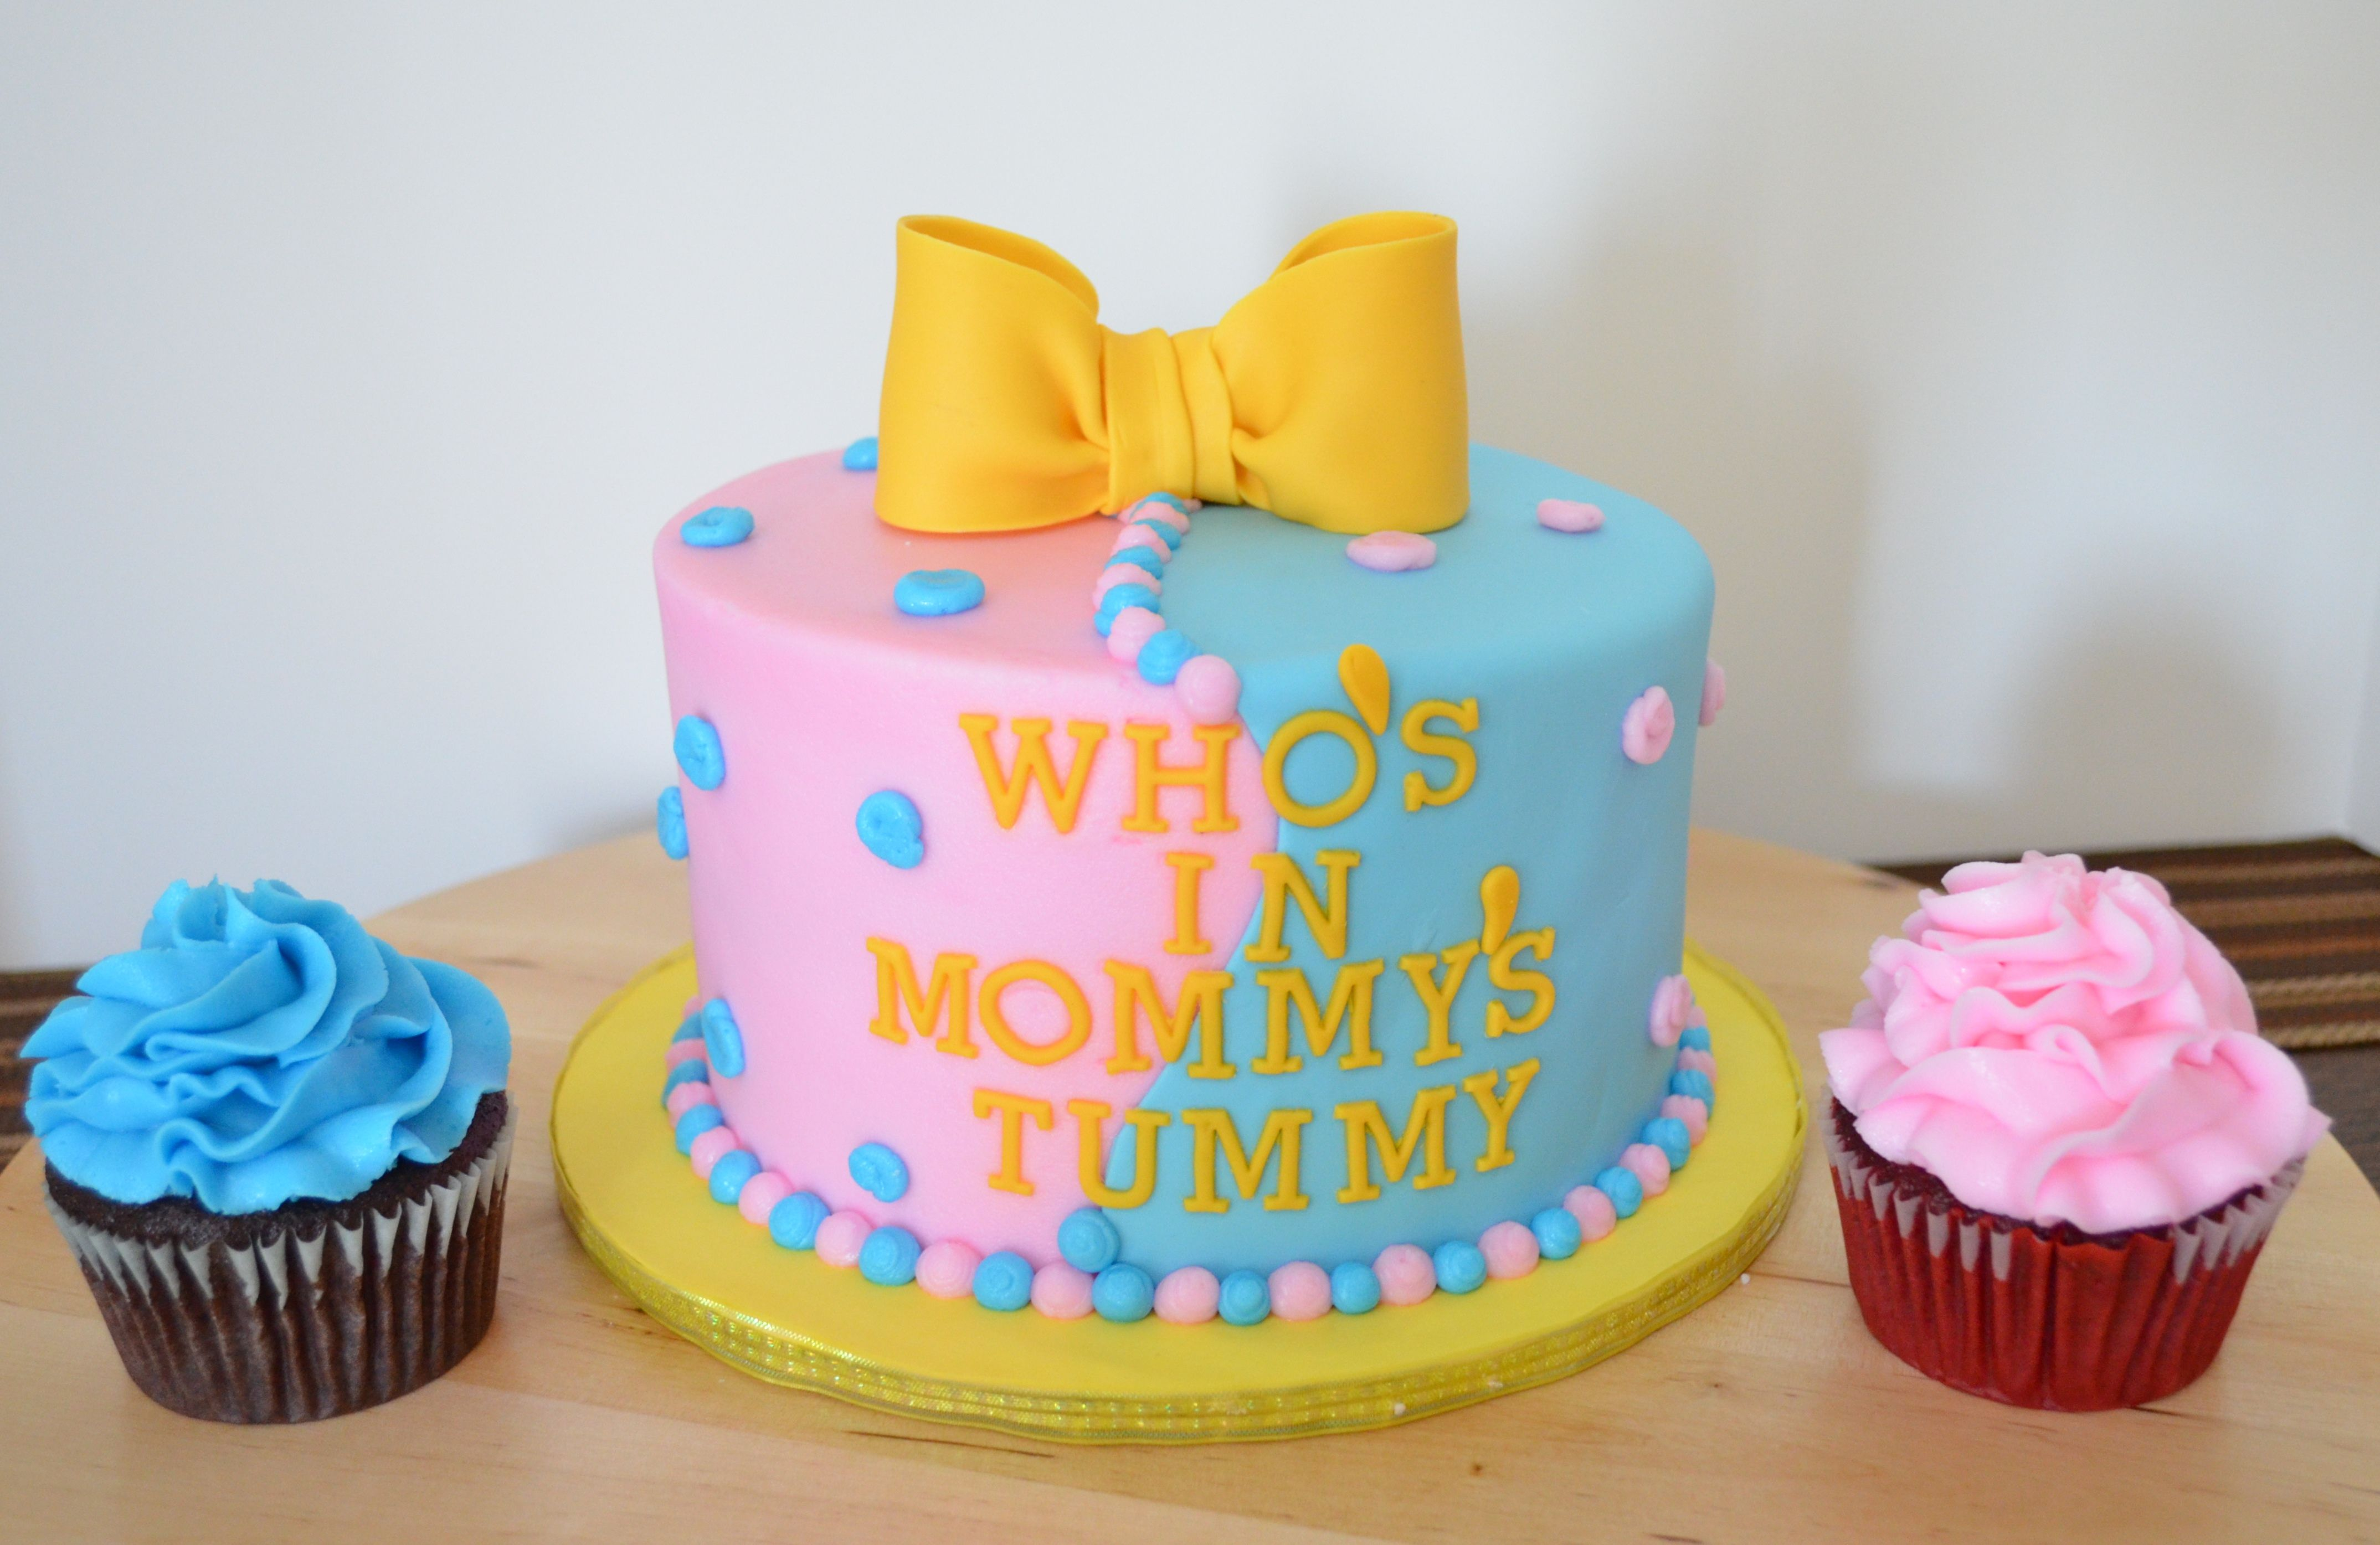 OMG Im in love with this cake gender reveal parties ideas